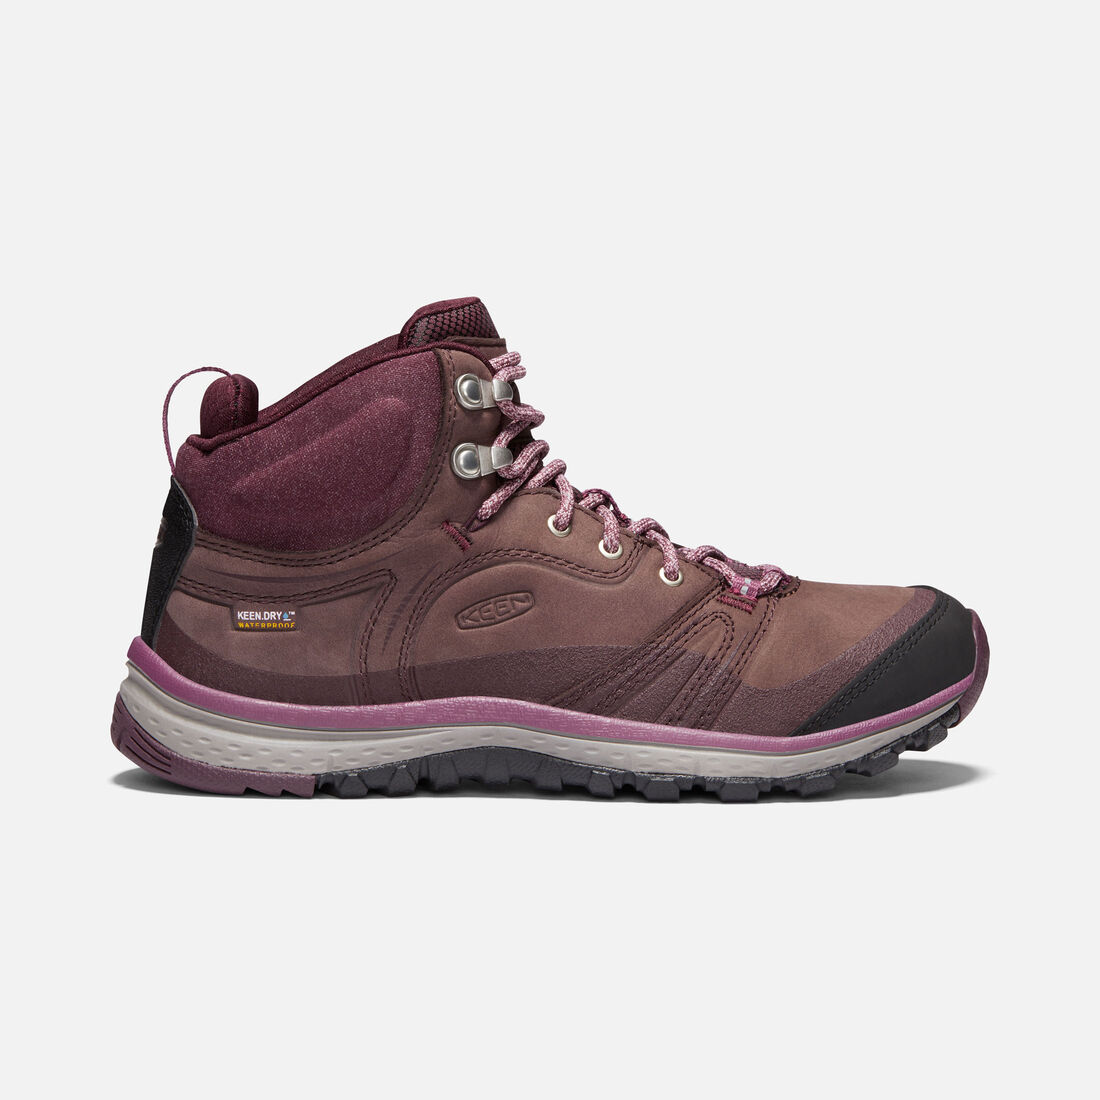 WOMEN'S TERRADORA LEATHER WATERPROOF MID HIKING BOOTS in PEPPERCORN/WINE TASTING - large view.